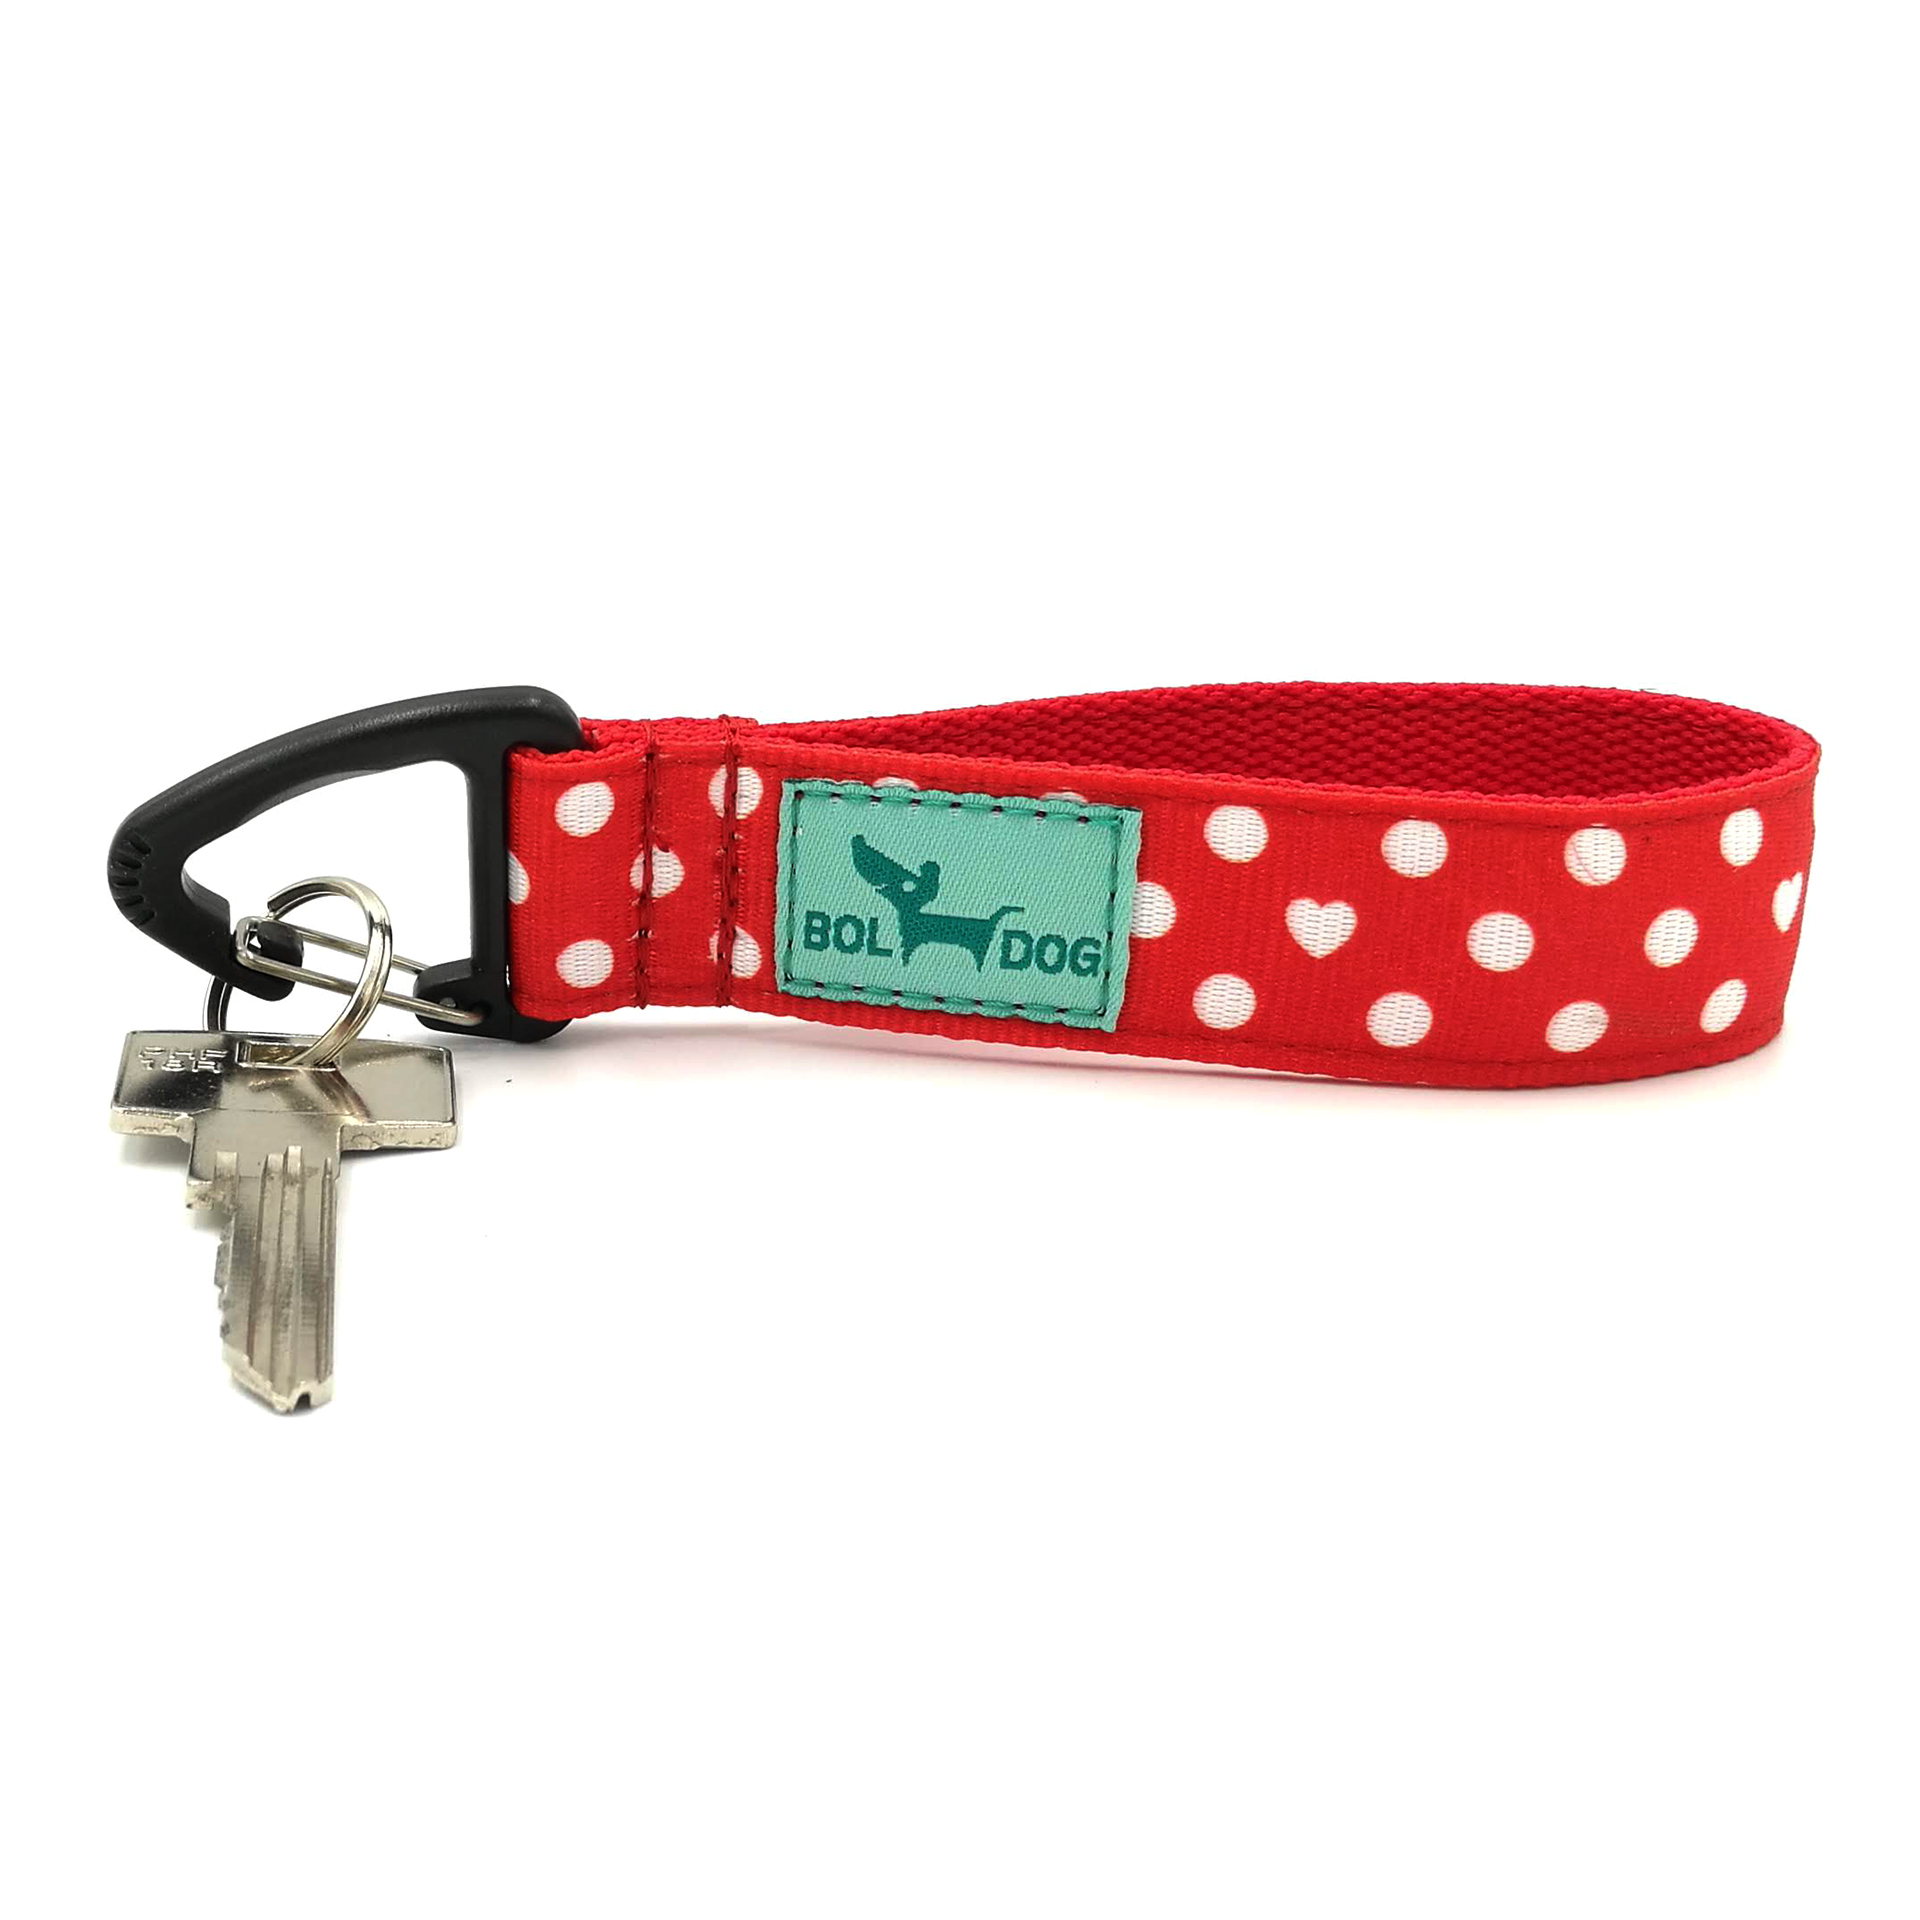 Red polka dots key holder